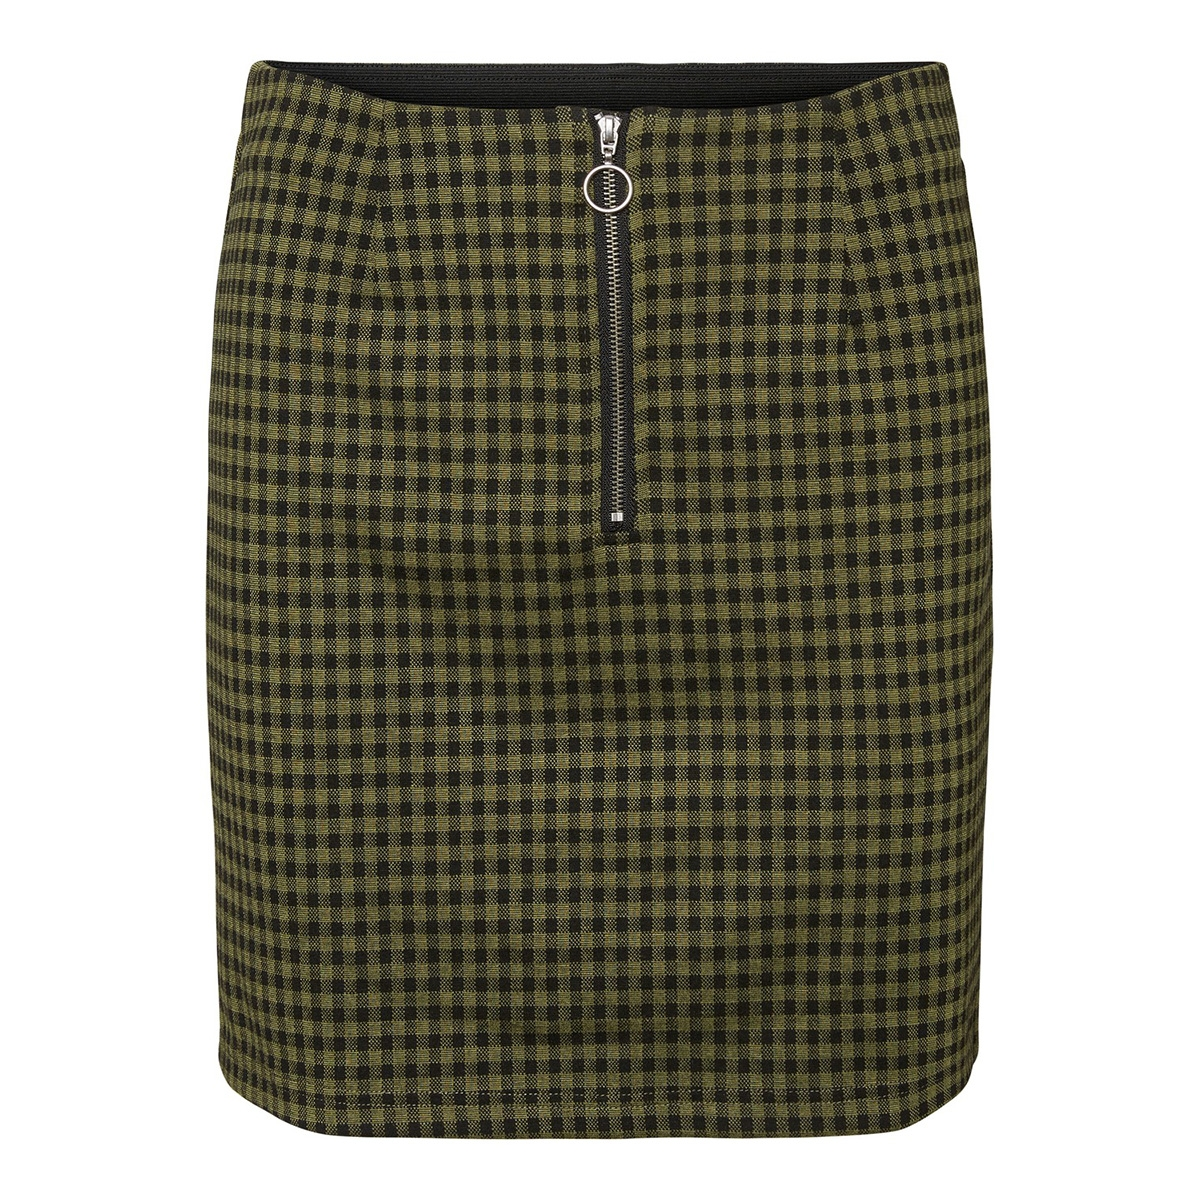 nmboss mini skirt 6 27008553 noisy may rok winter moss